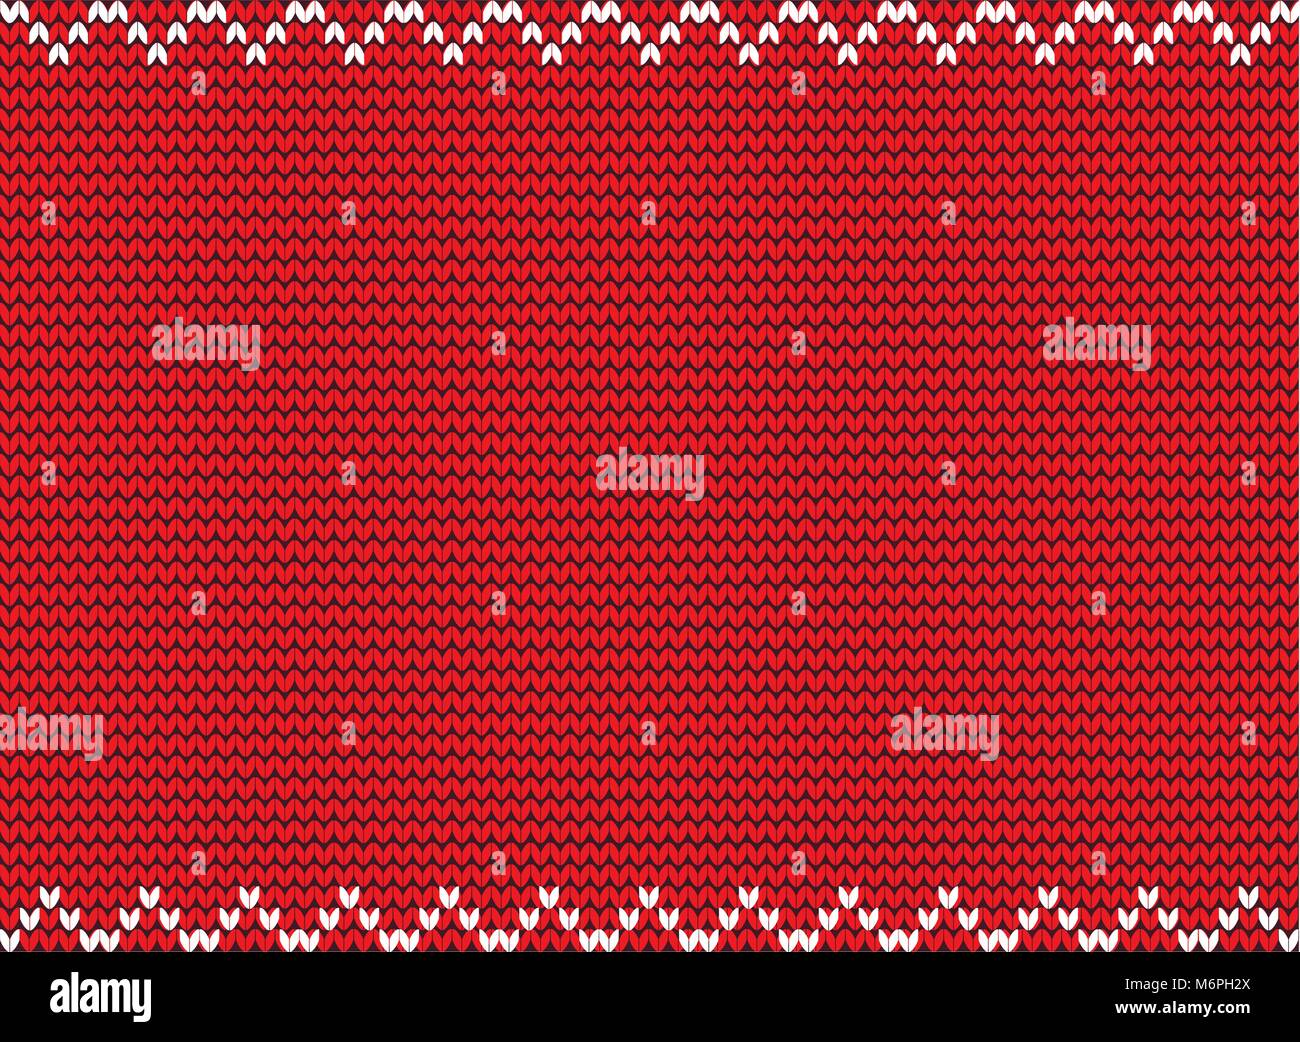 Vector illustration of red knitted background. Knitting pattern with ...